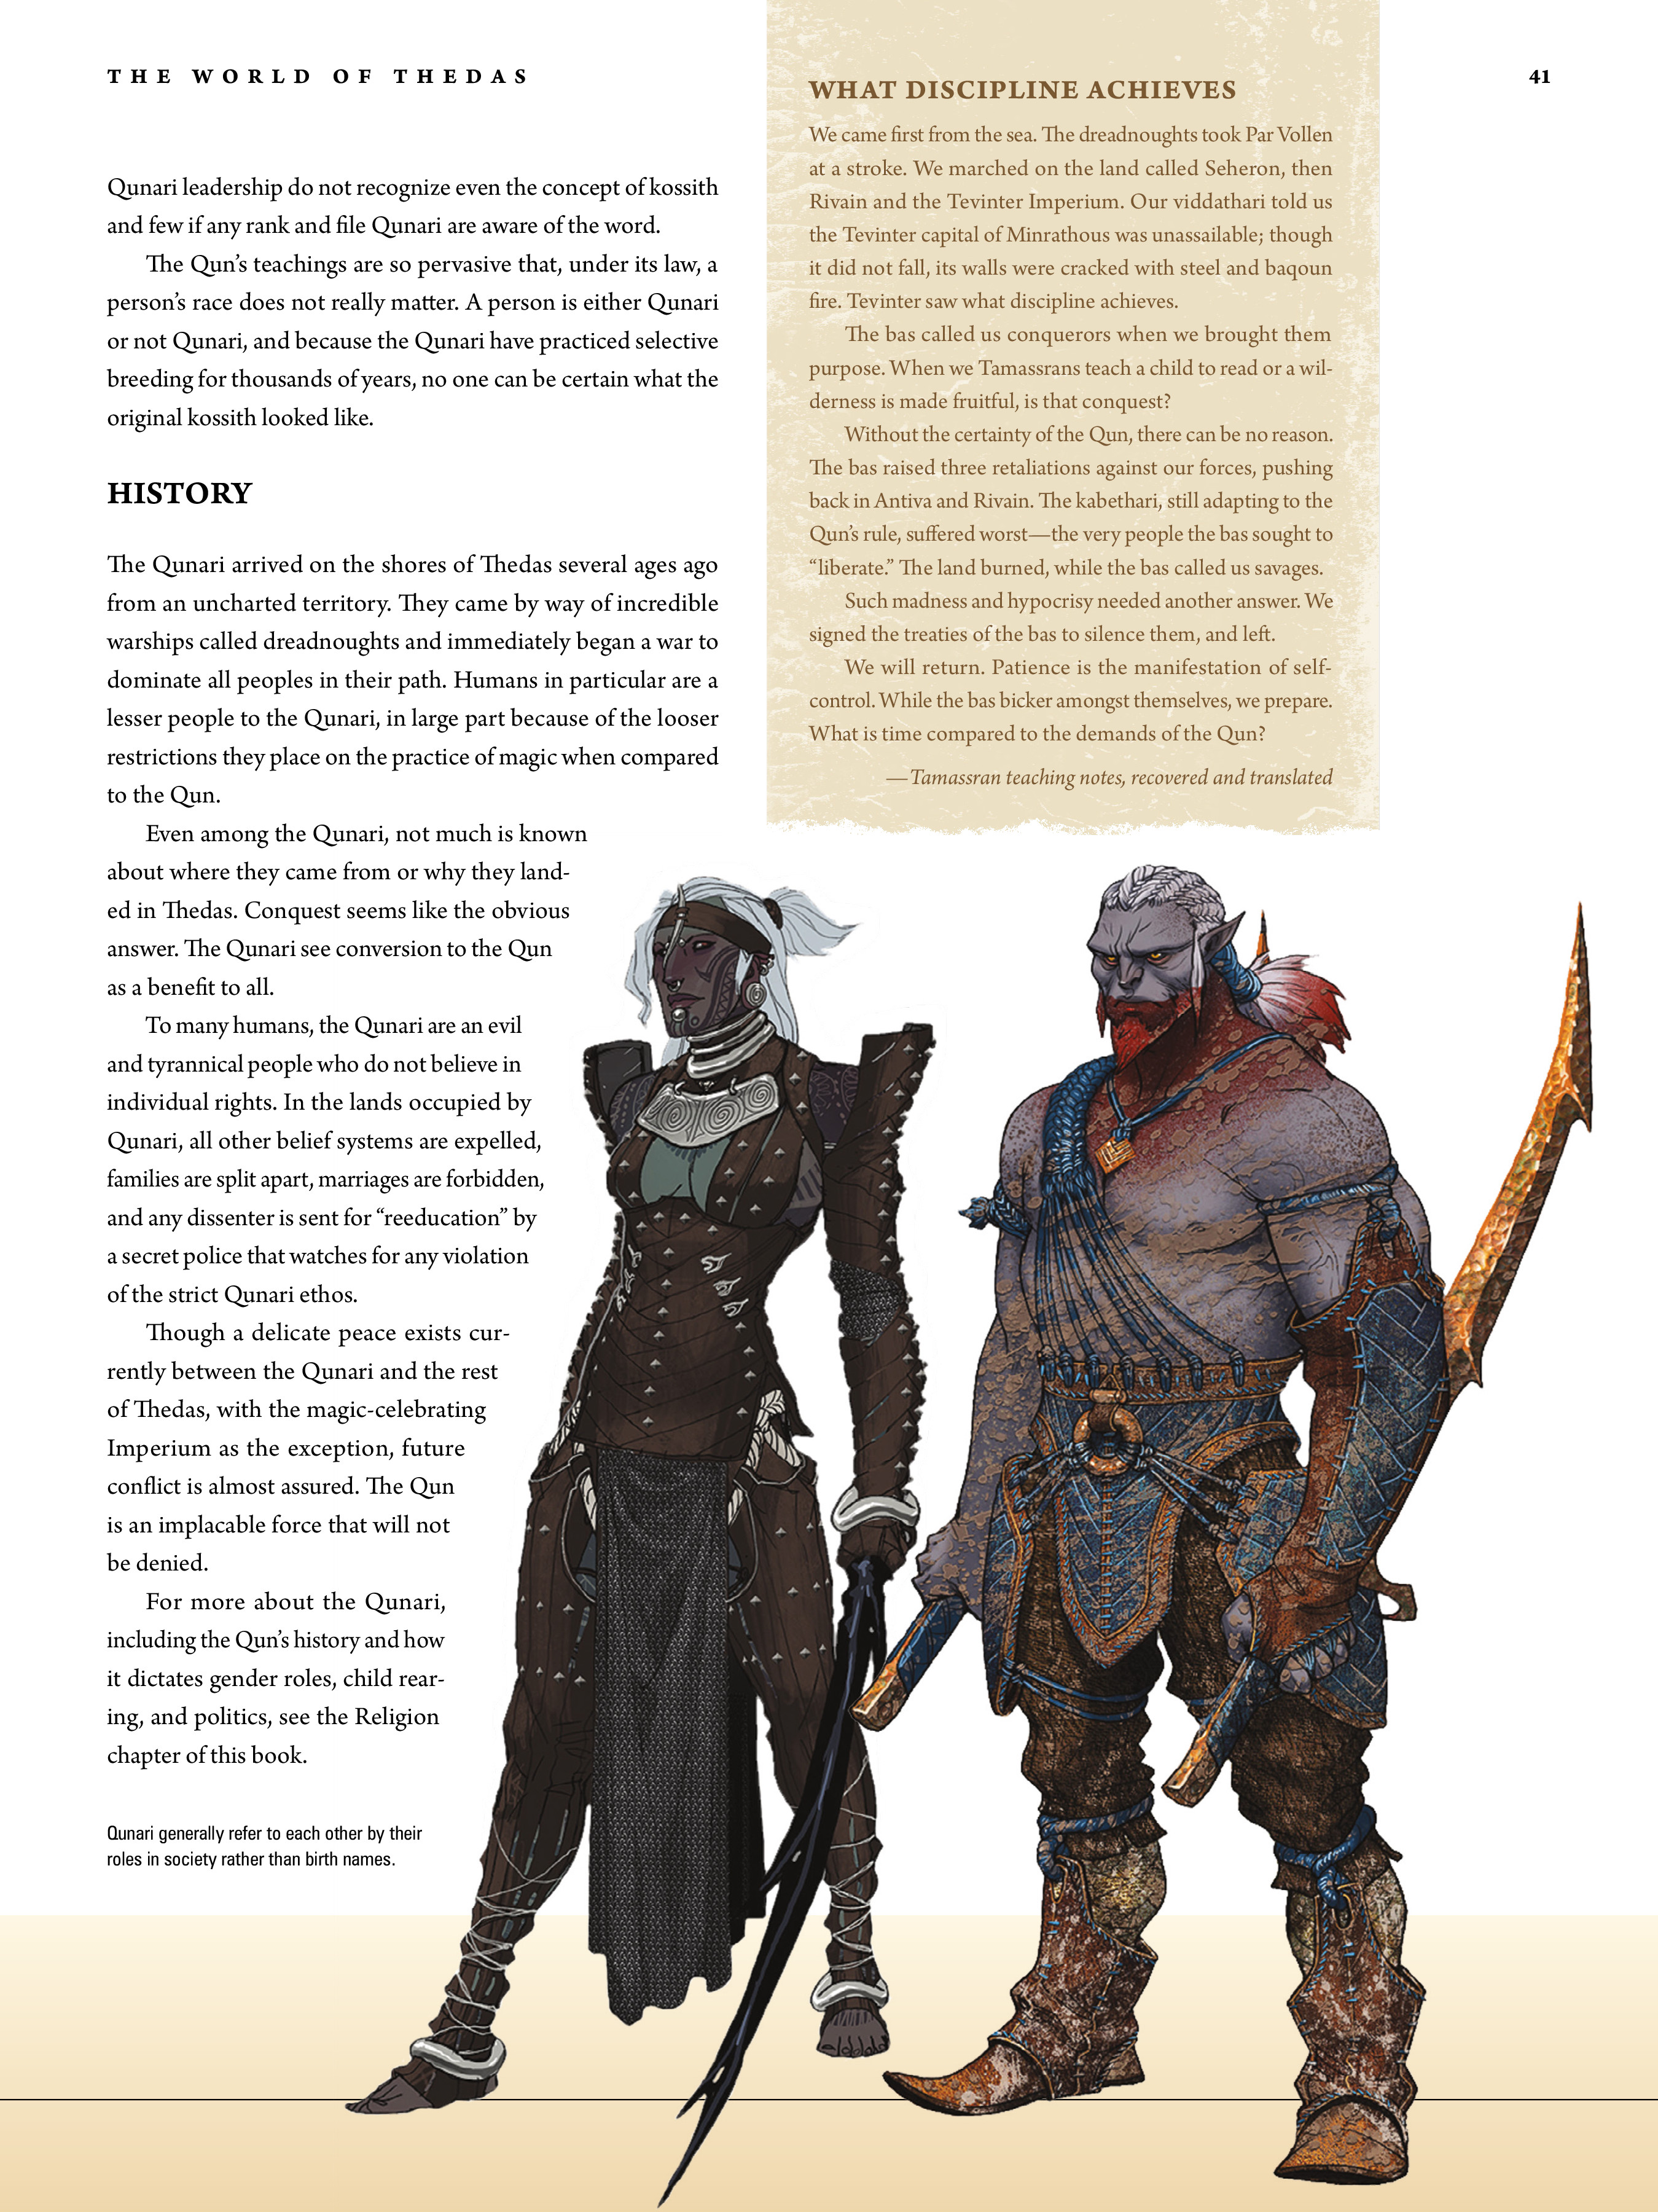 Read online Dragon Age: The World of Thedas comic -  Issue # TPB 1 - 33